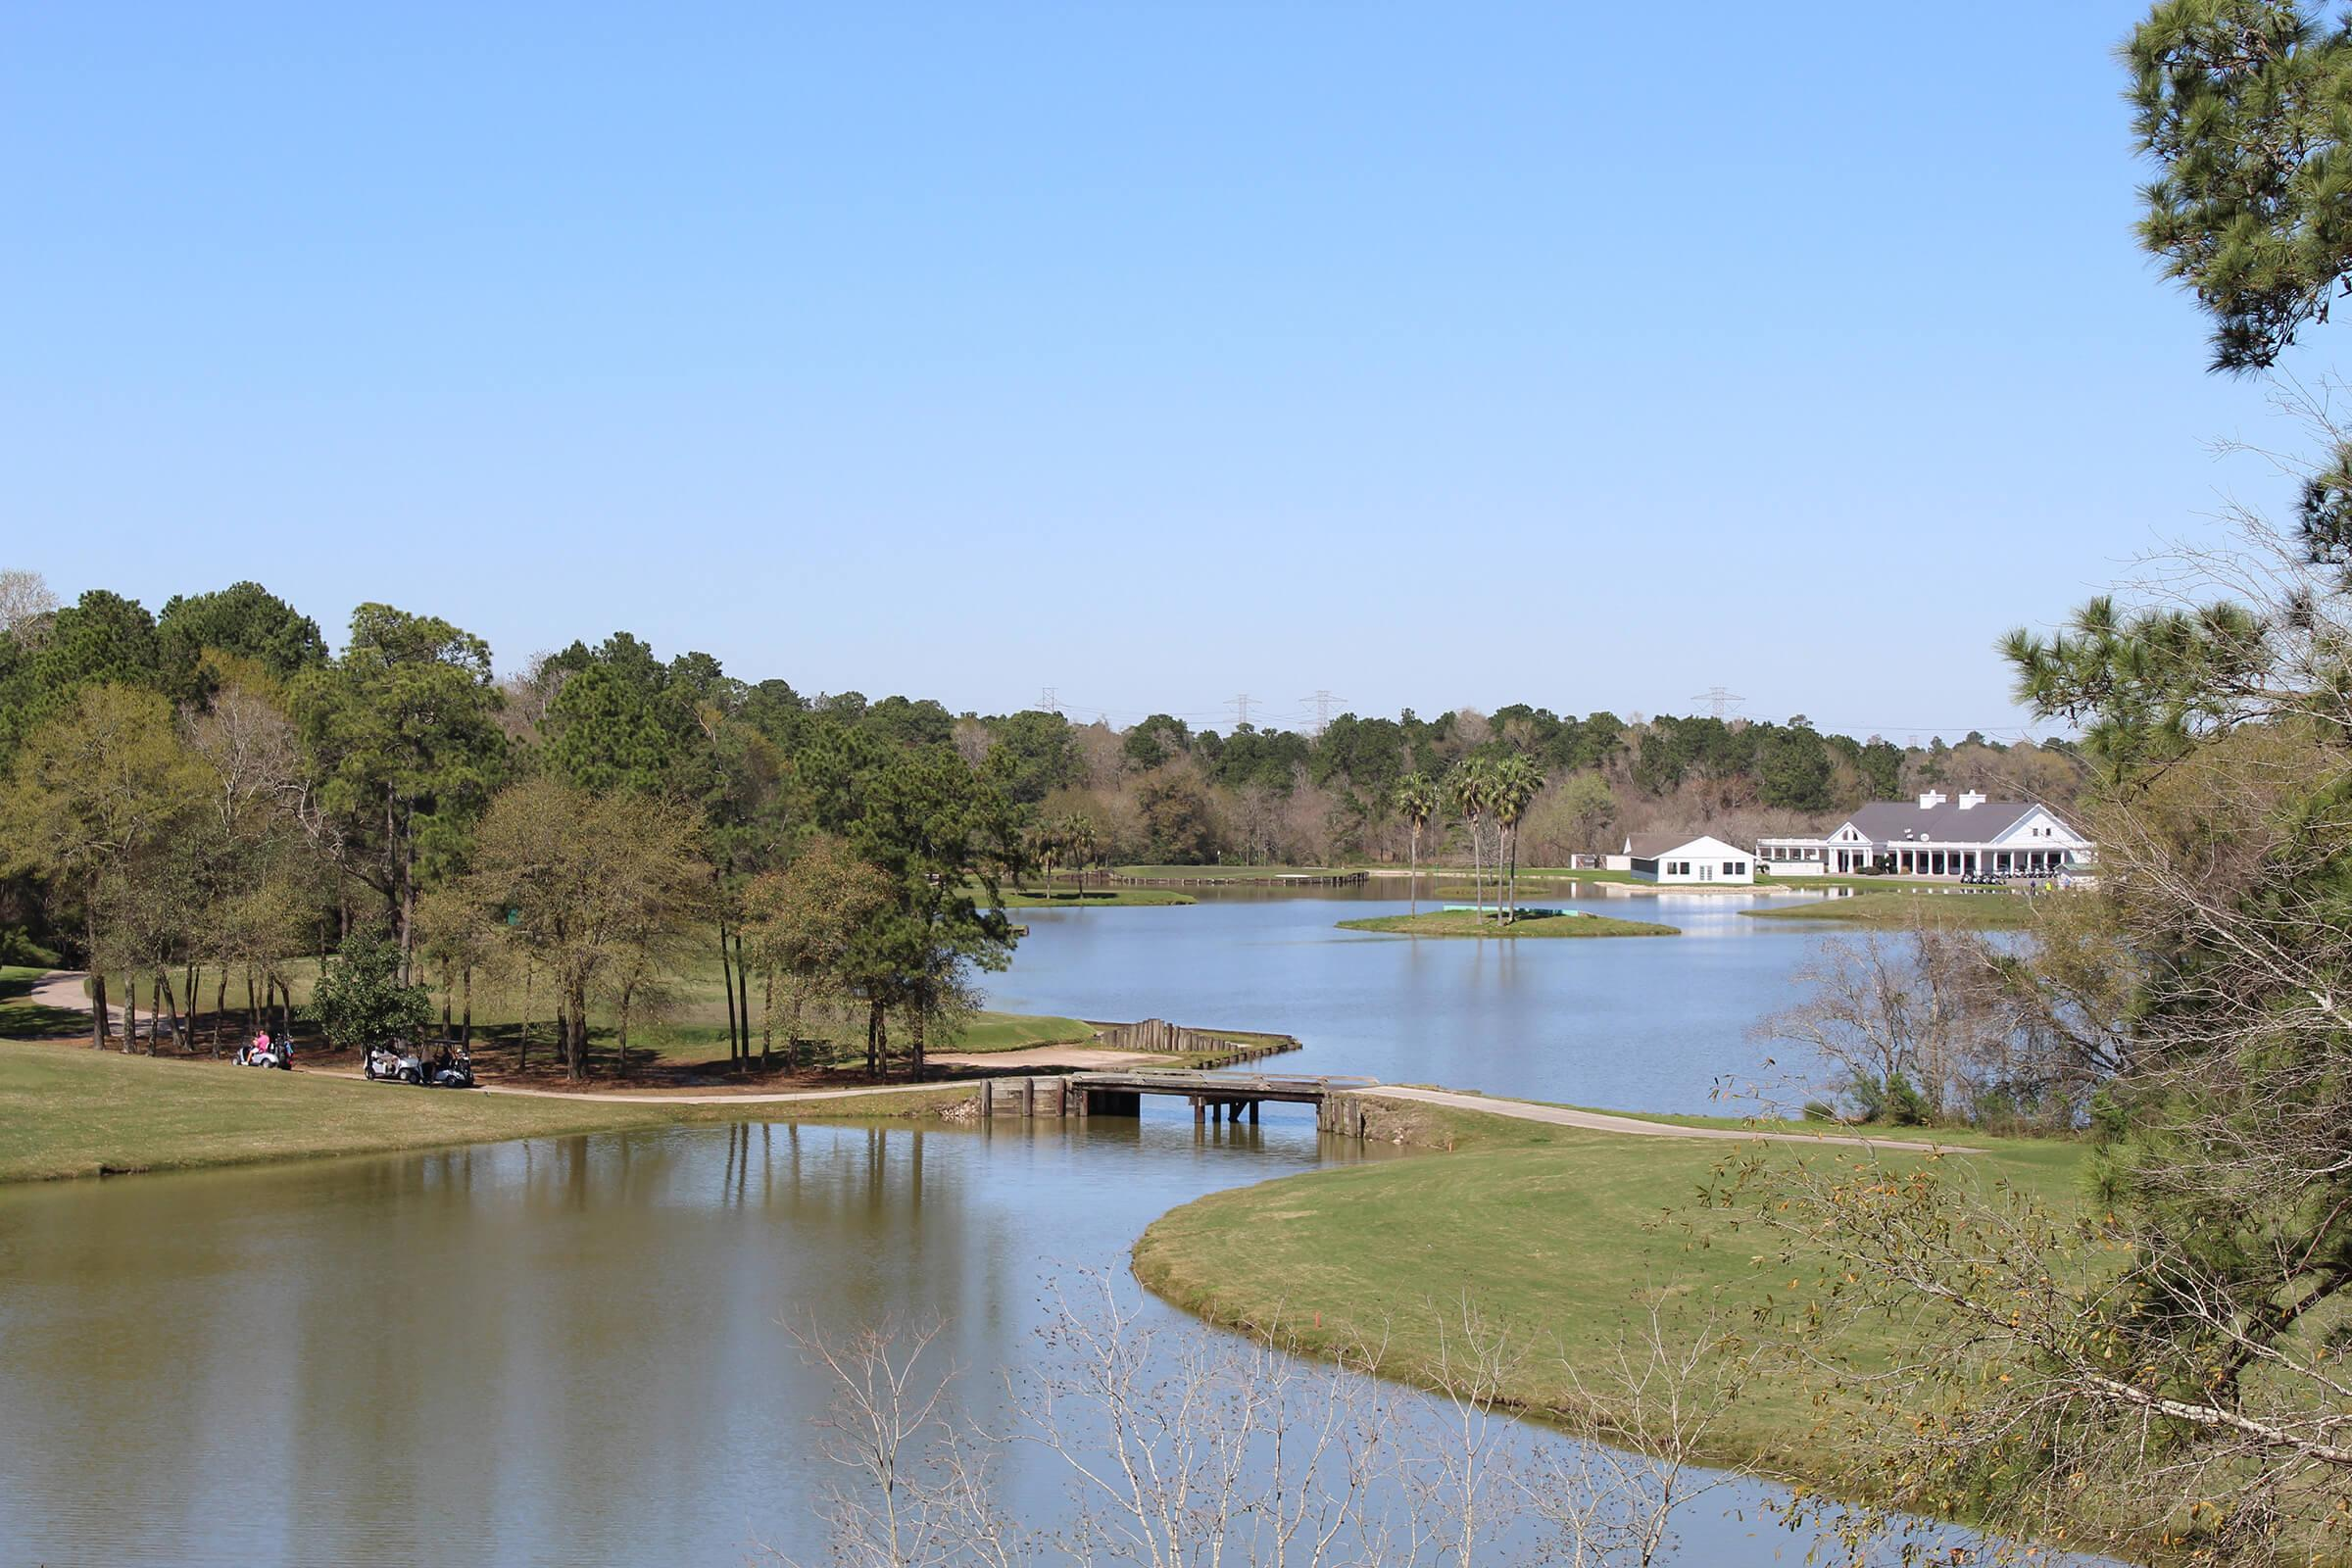 Golf course lake view. Large lake with small bridge spanning for golf carts